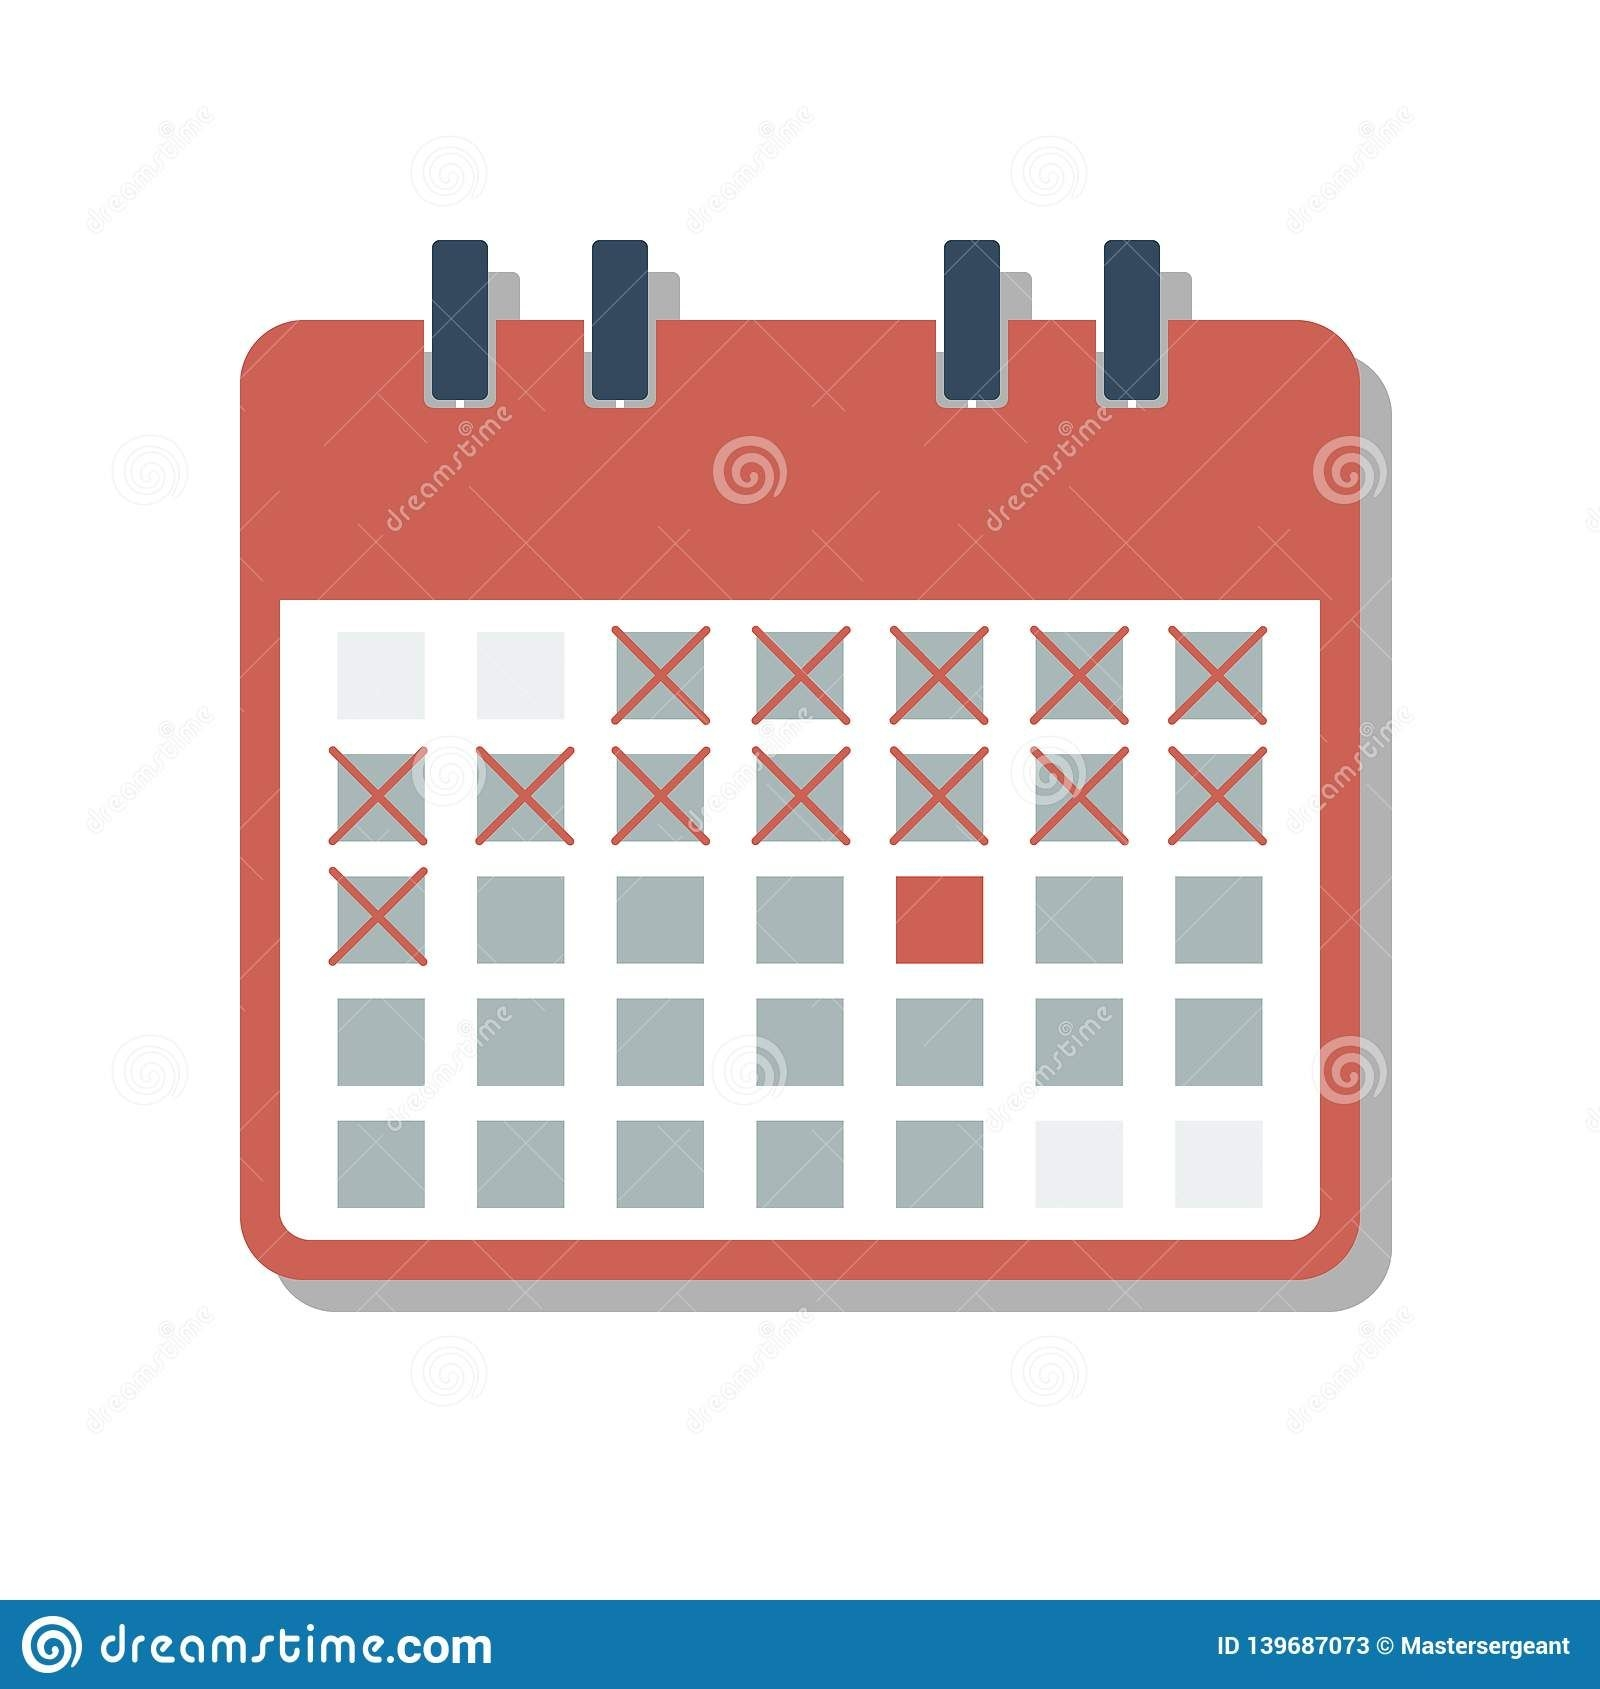 red calendar grid with cross marked days, countdown days